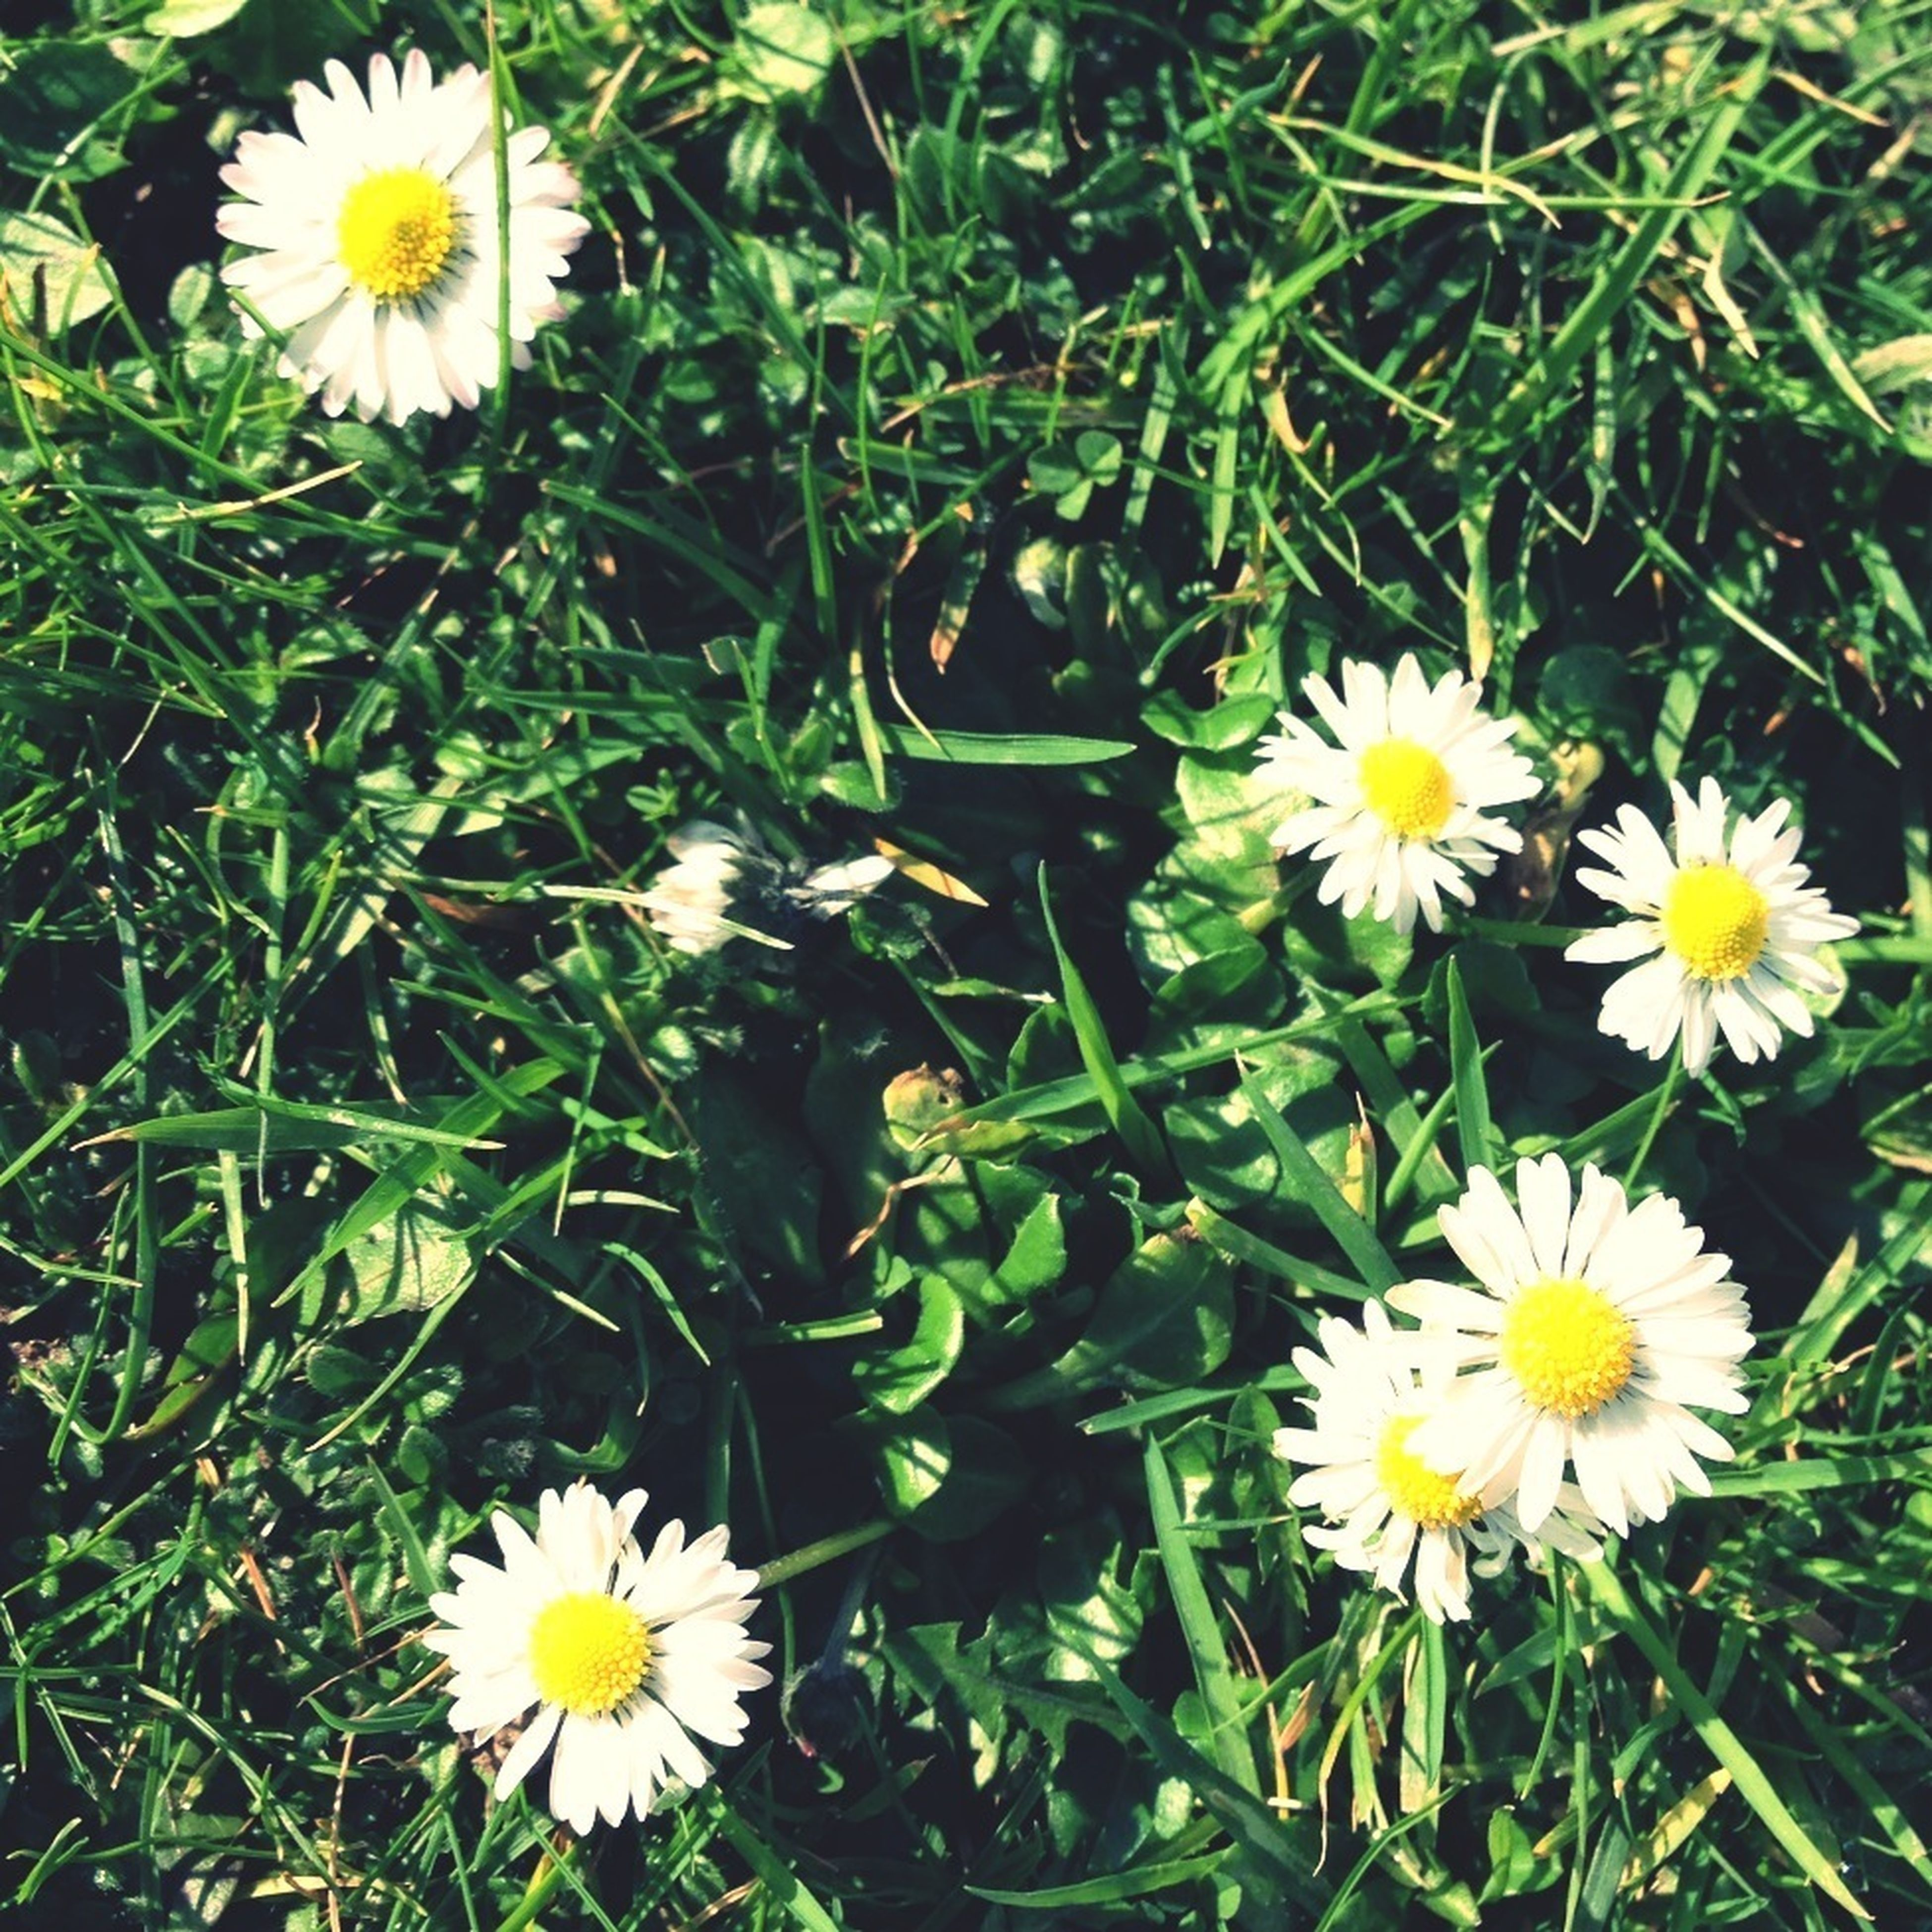 flower, freshness, petal, fragility, daisy, growth, flower head, white color, beauty in nature, blooming, plant, high angle view, yellow, nature, field, pollen, grass, green color, in bloom, wildflower